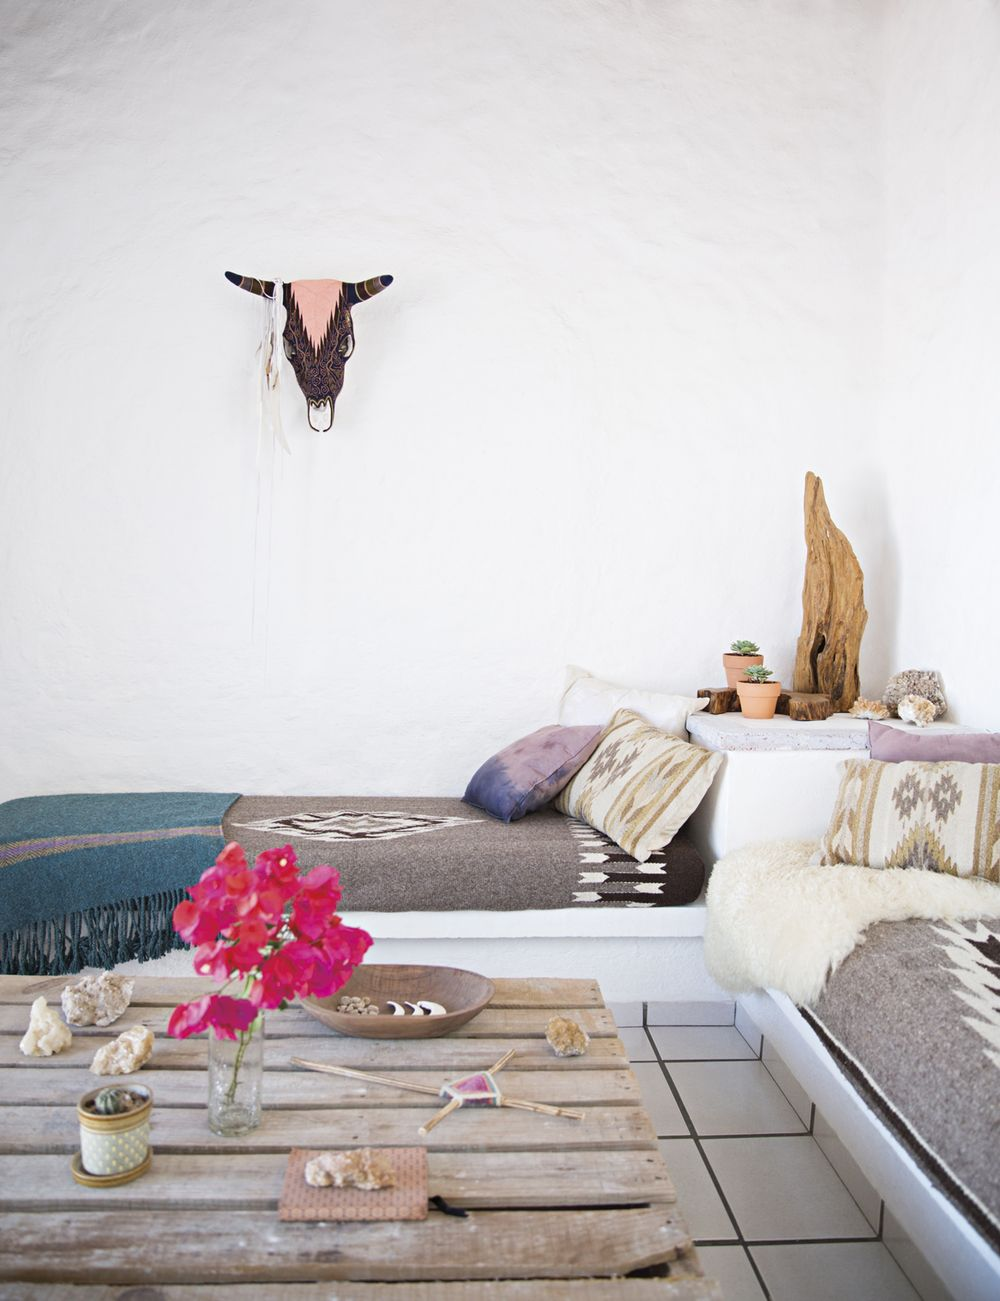 Boho Chic Home With Mexican Decor Touches | Mexican Dream ...